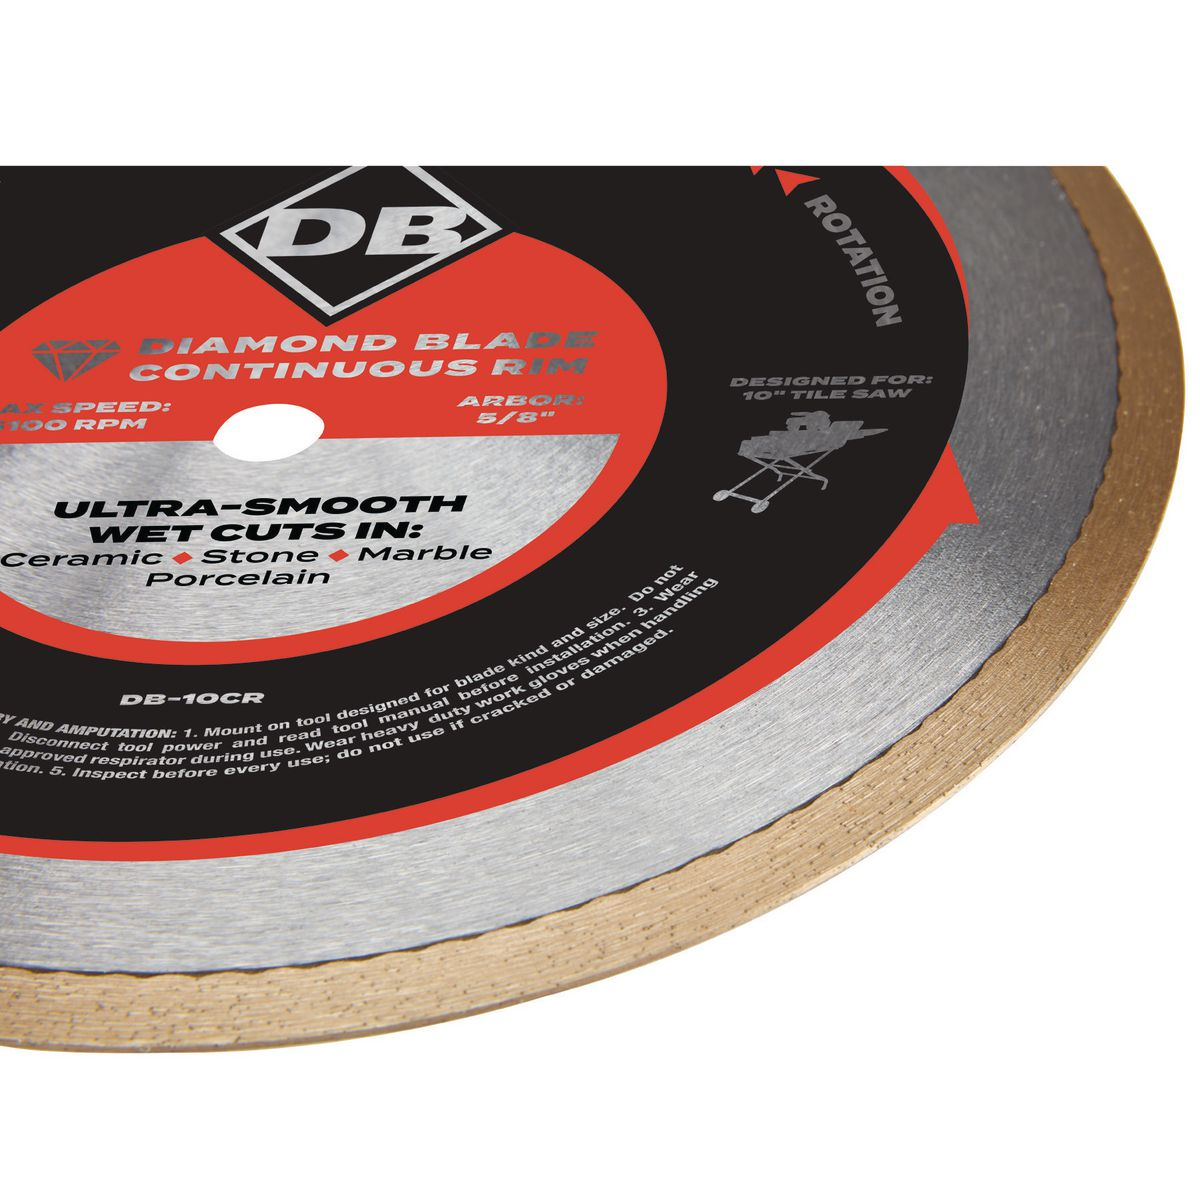 10 In Continuous Rim Wet Cut Diamond Blade